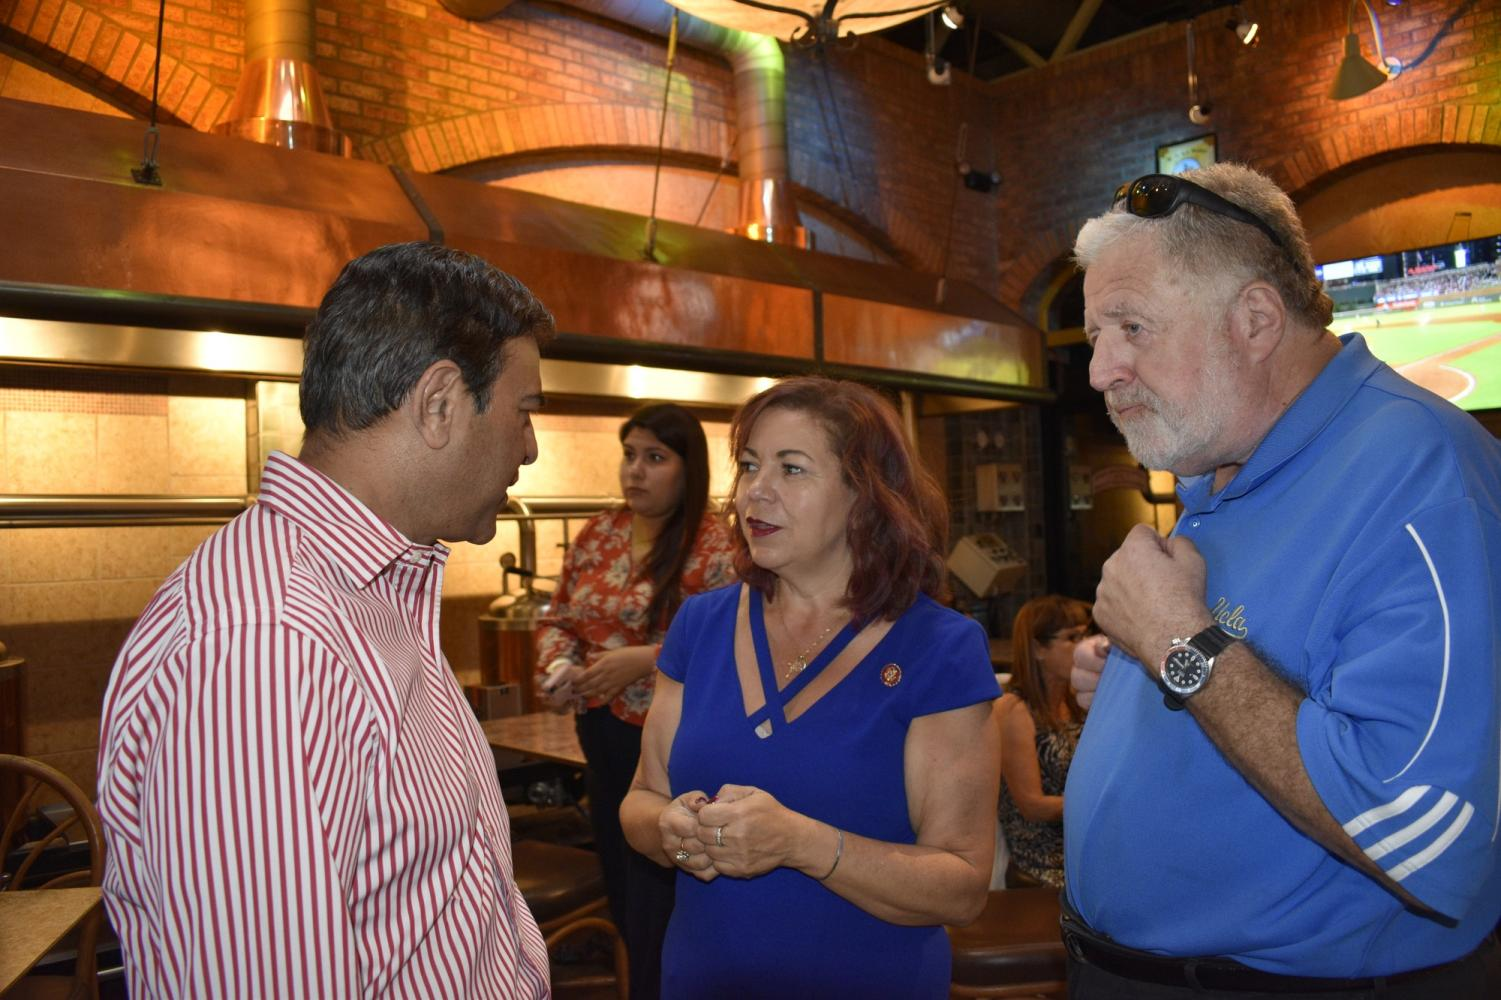 Congresswoman Linda Sanchez campaign meet and greet to collect signatures on Oct. 3, 2019. Artesia Mayor Ali Taj, Congresswoman Linda Sanchez and Lou Delgado discussed issues pertaining to Artesia. Photo credit: Denise Ng